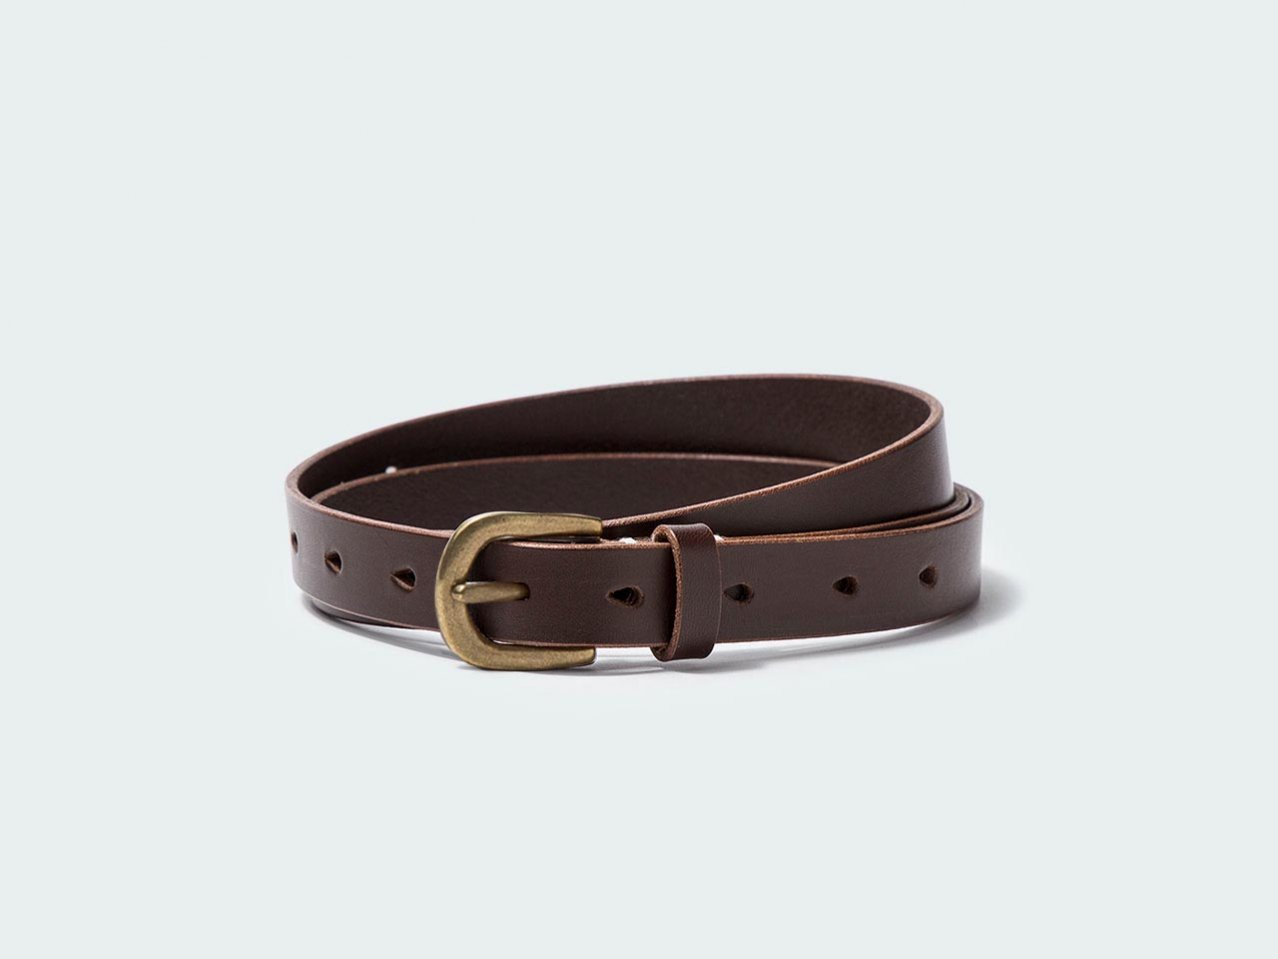 NARROW STANDARD BELT 20 / DARK BROWN